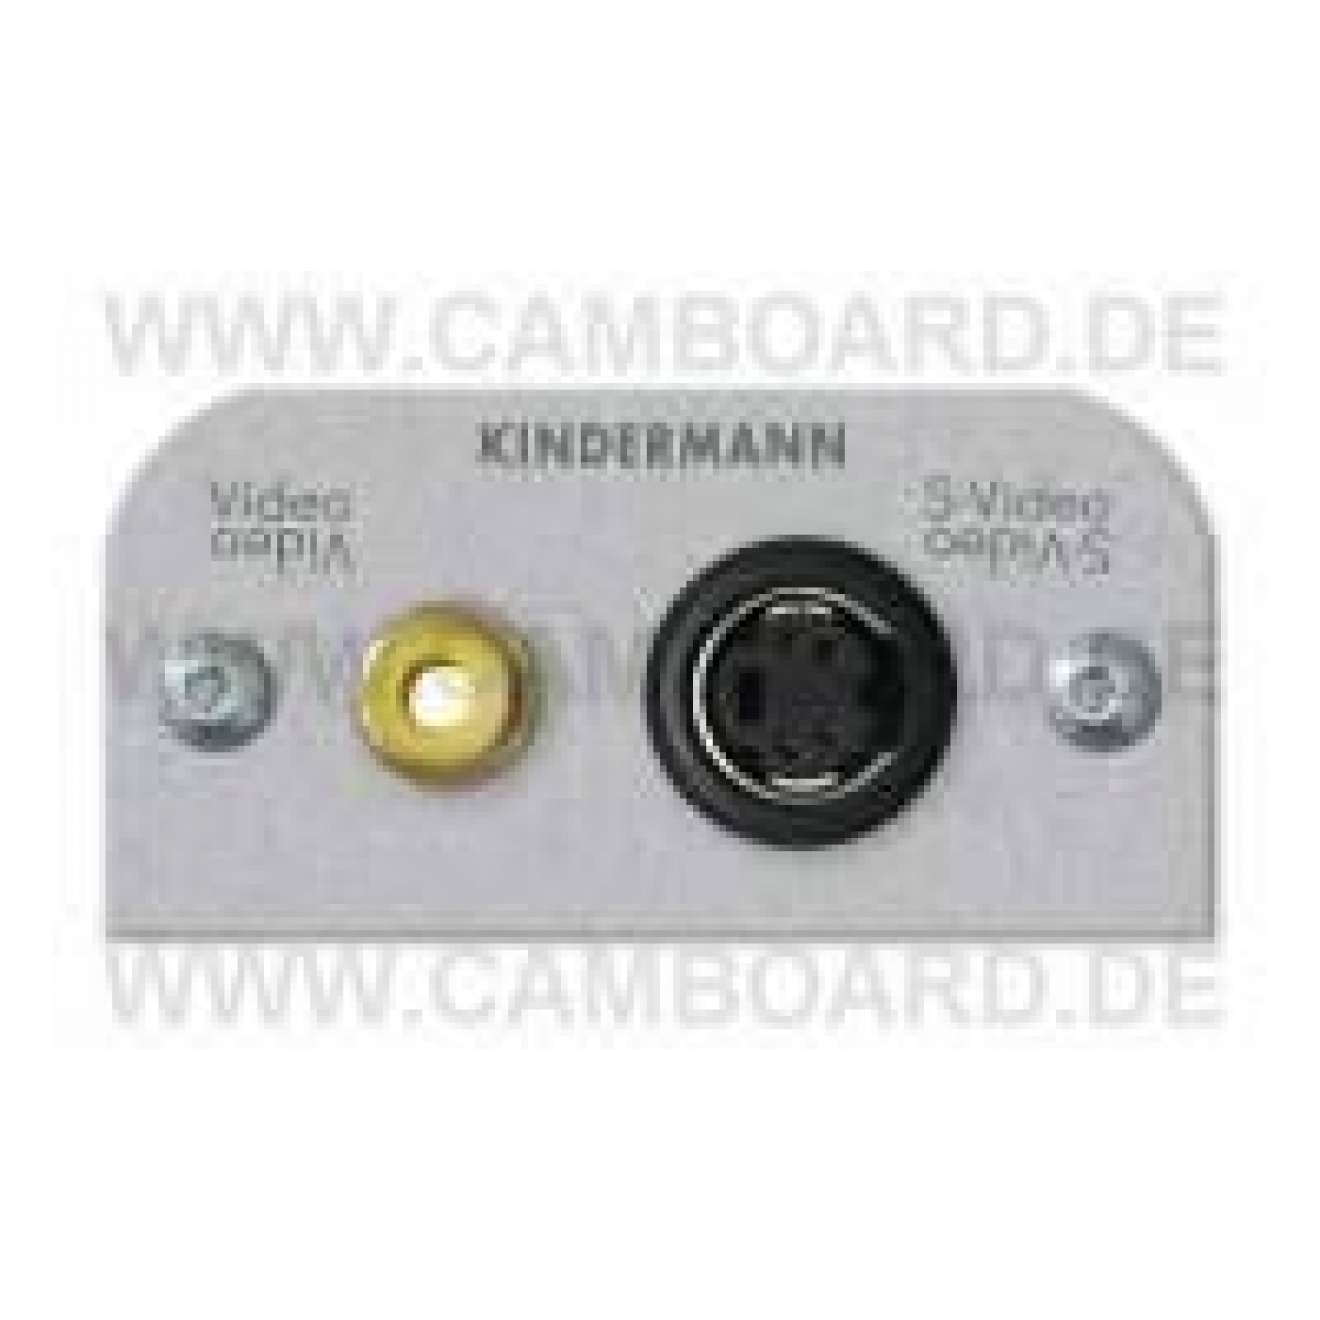 Kindermann Video/SVideo Blende L